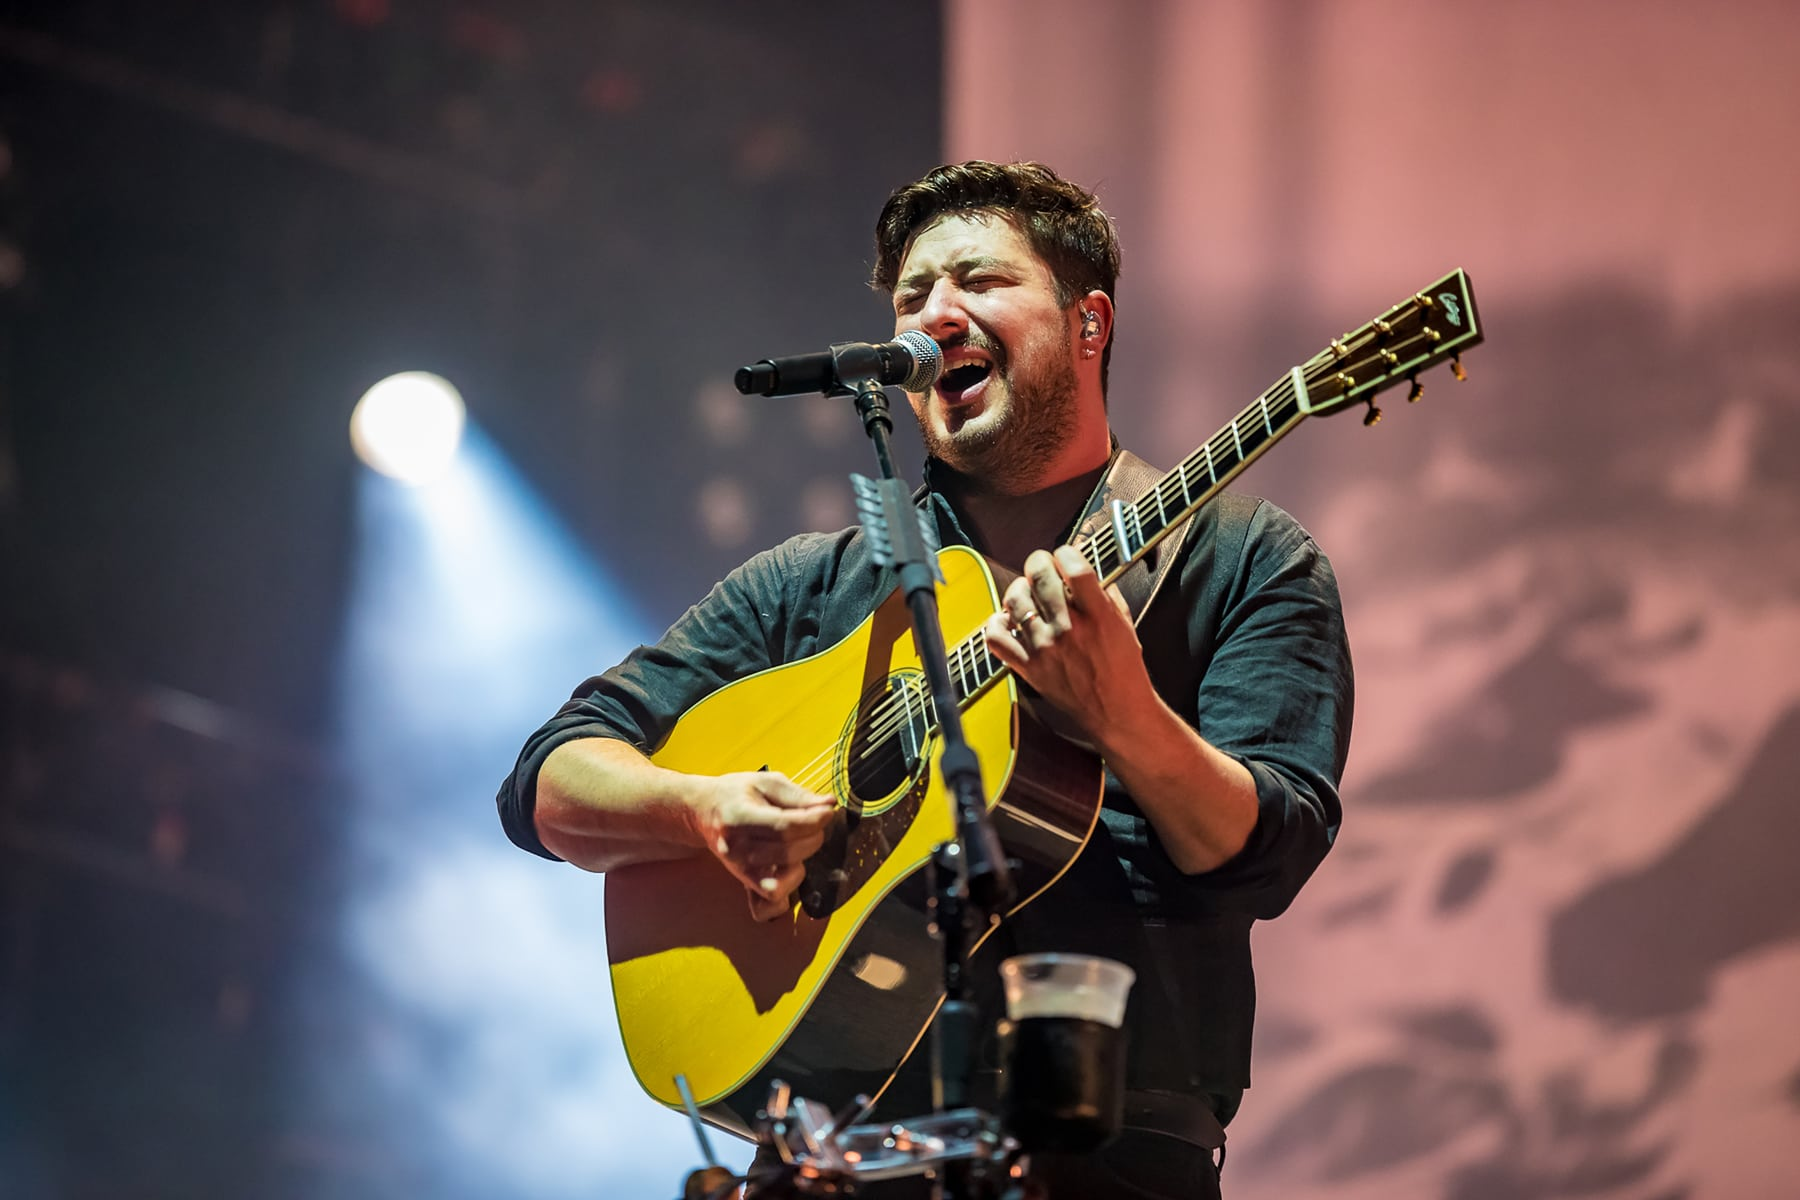 mumford & sons band onstage